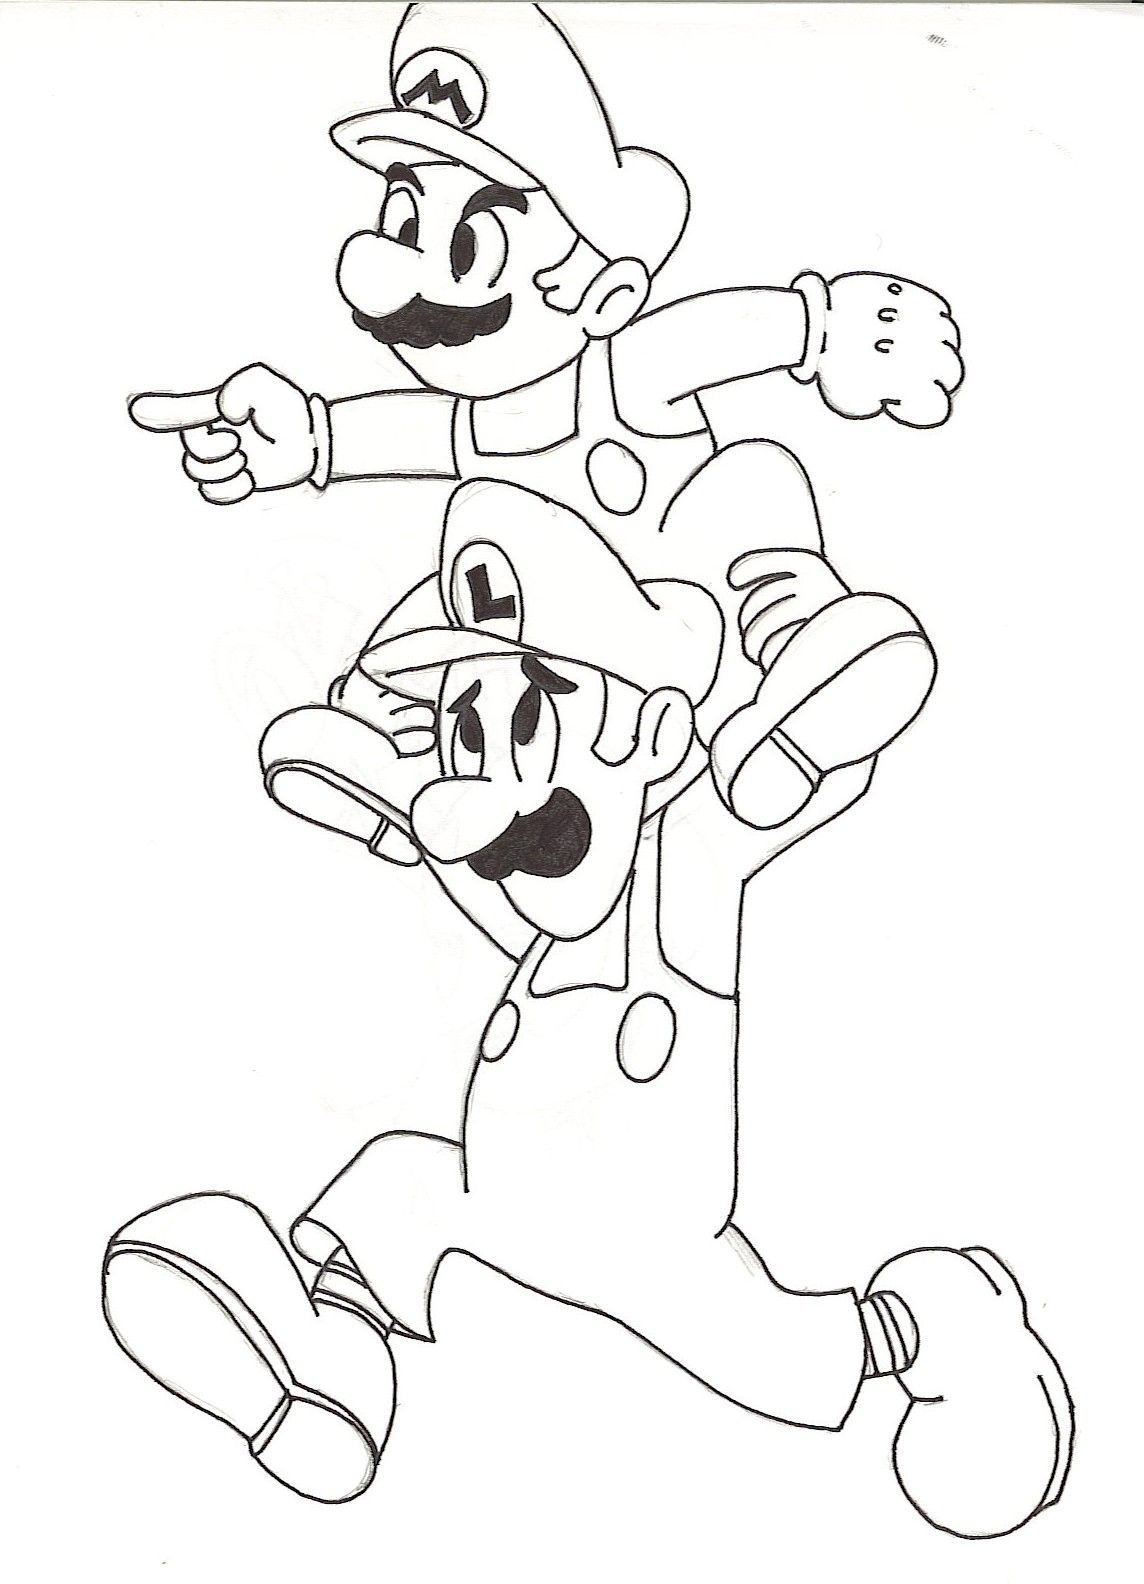 Guarda tutti i disegni da colorare di super mario www for Disegni da colorare super mario bros